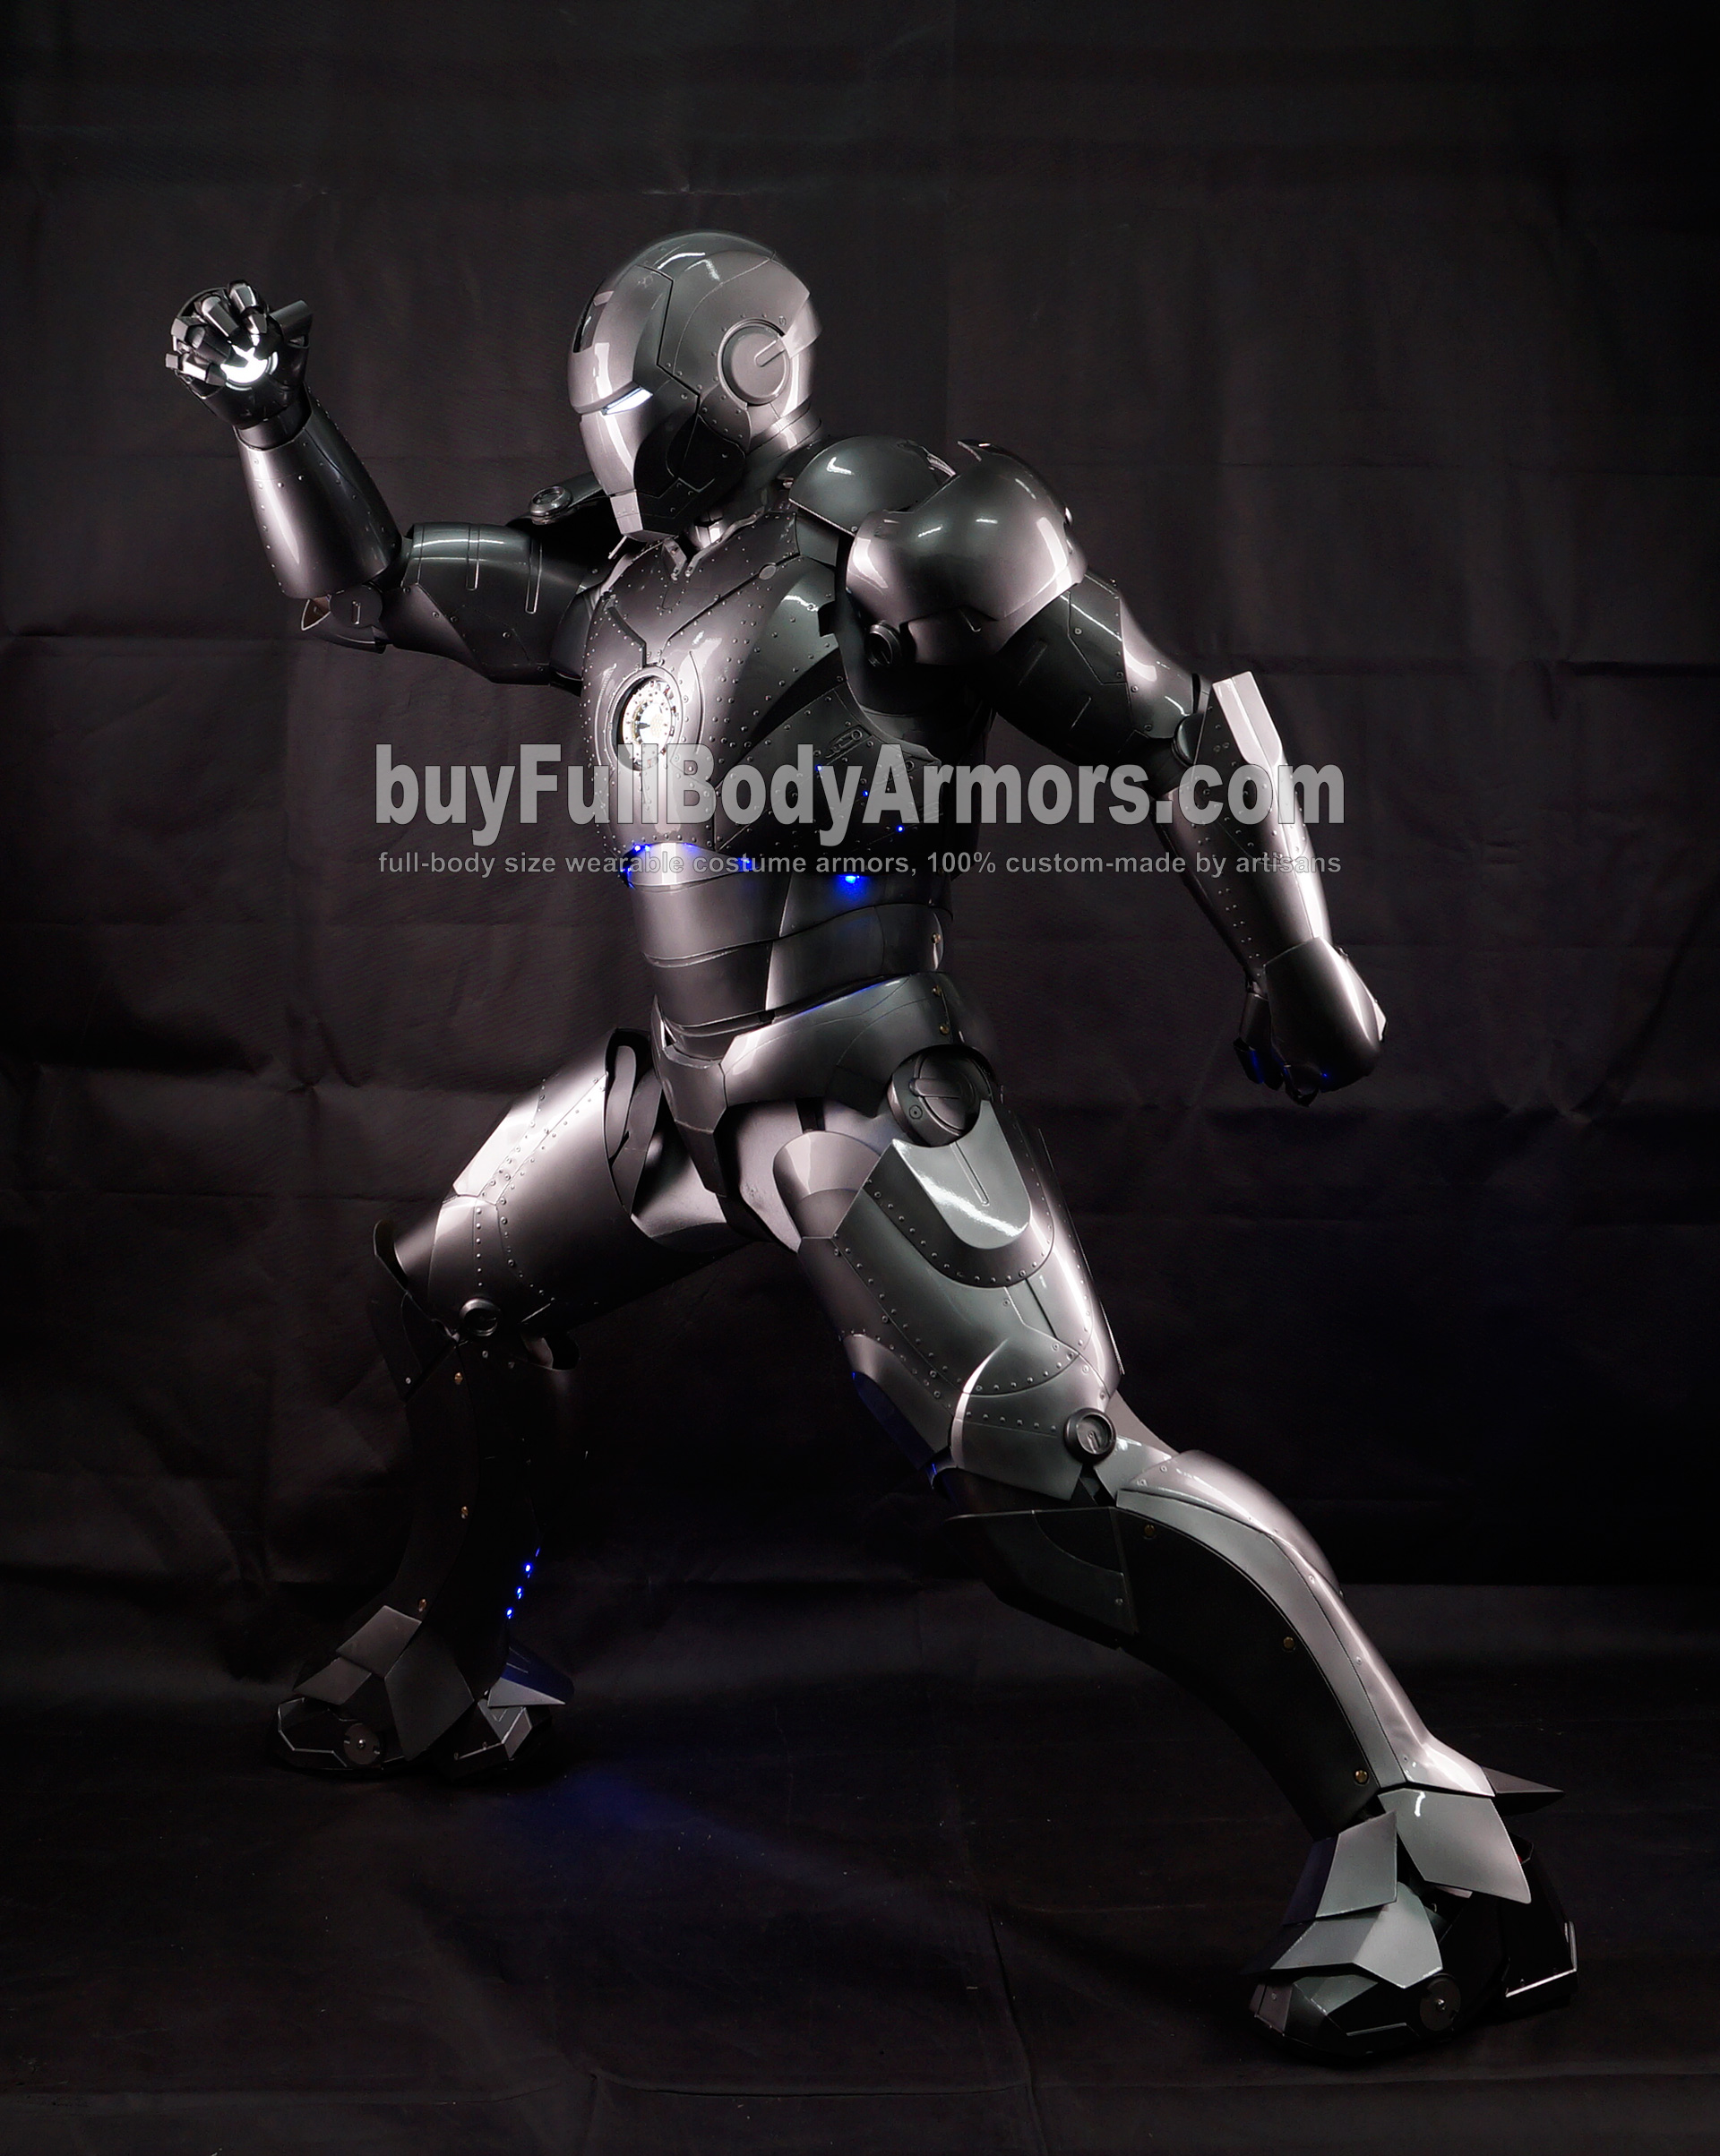 High Definition Photos of the Wearable Iron Man Mark 2 II Armor Costume Suit 4